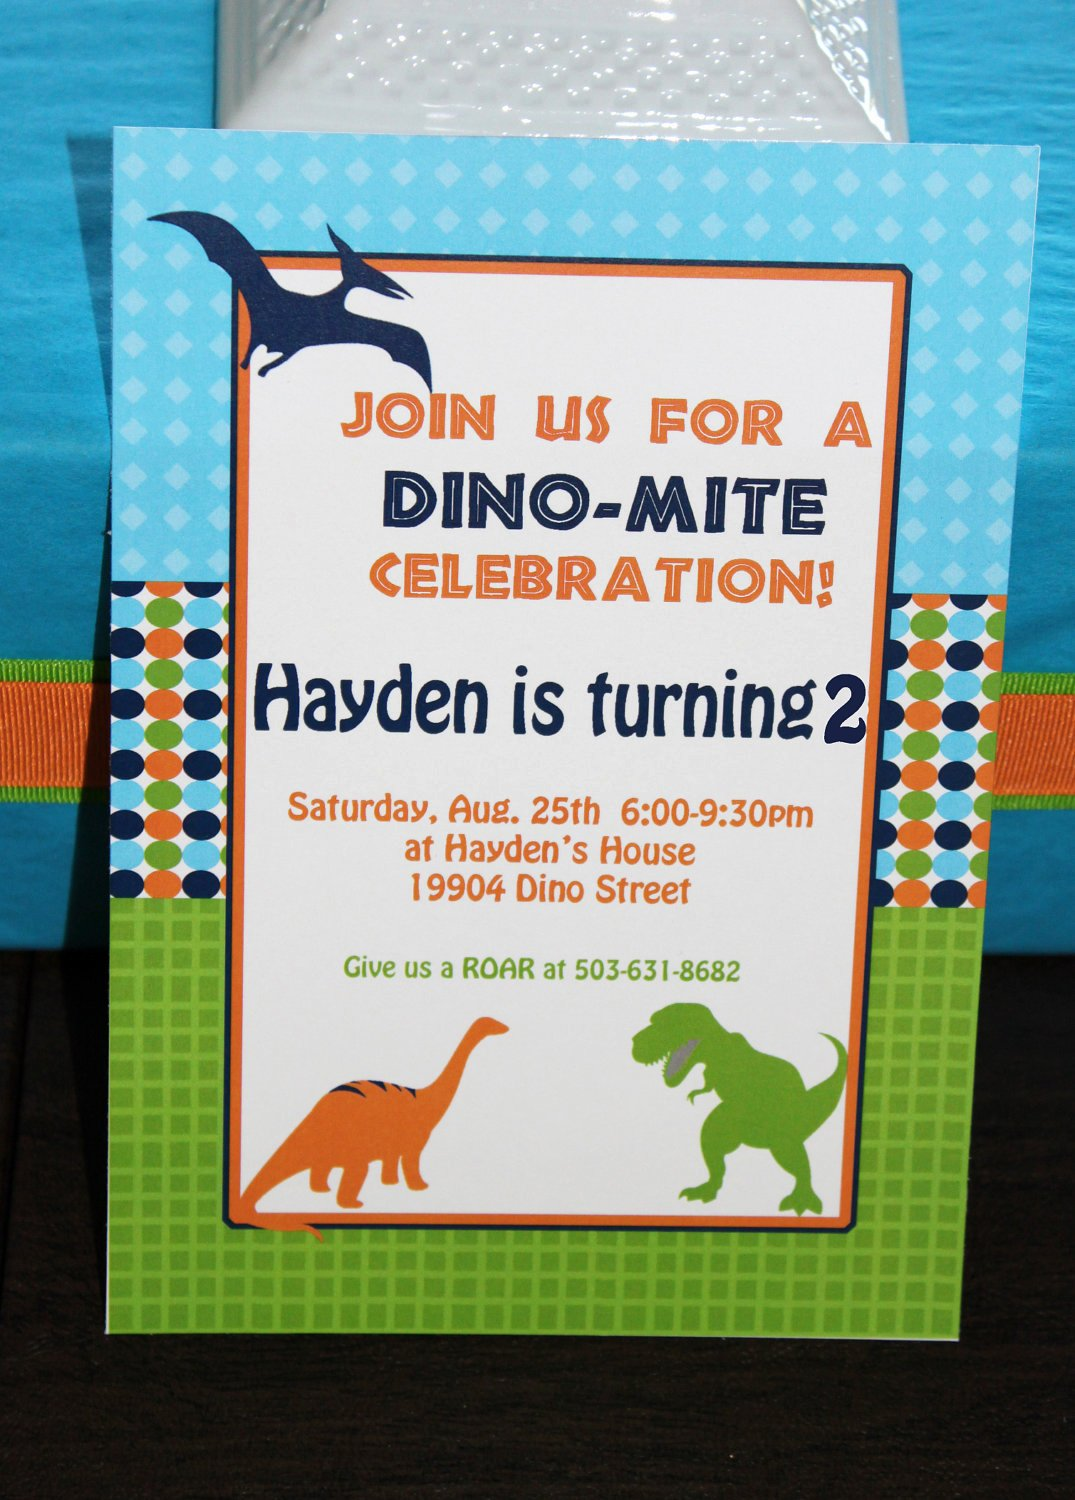 Dinosaur Birthday Party Invitations Awesome Diy Dinosaur Birthday Party Printable Invitation 5x7 4x6